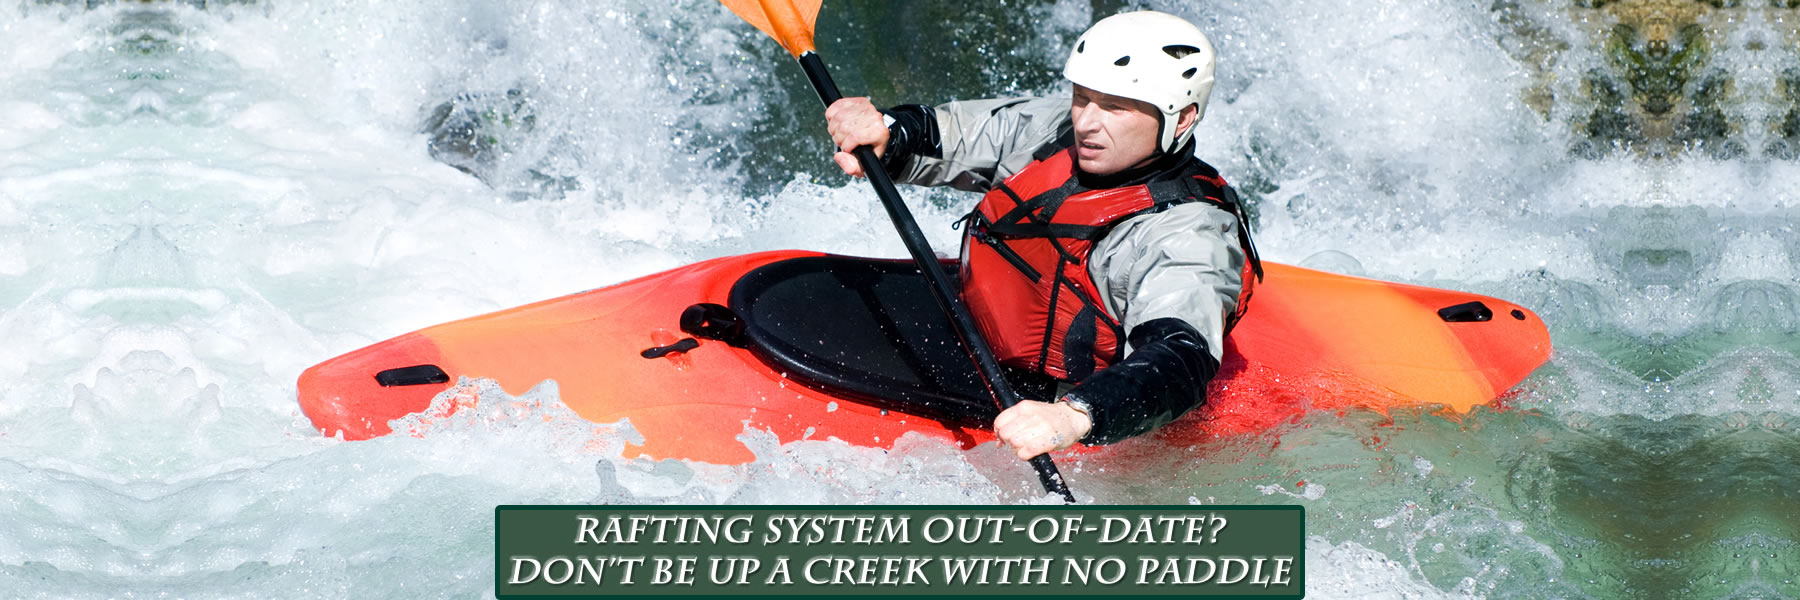 Rafting and tour activity reservation software with online reservations